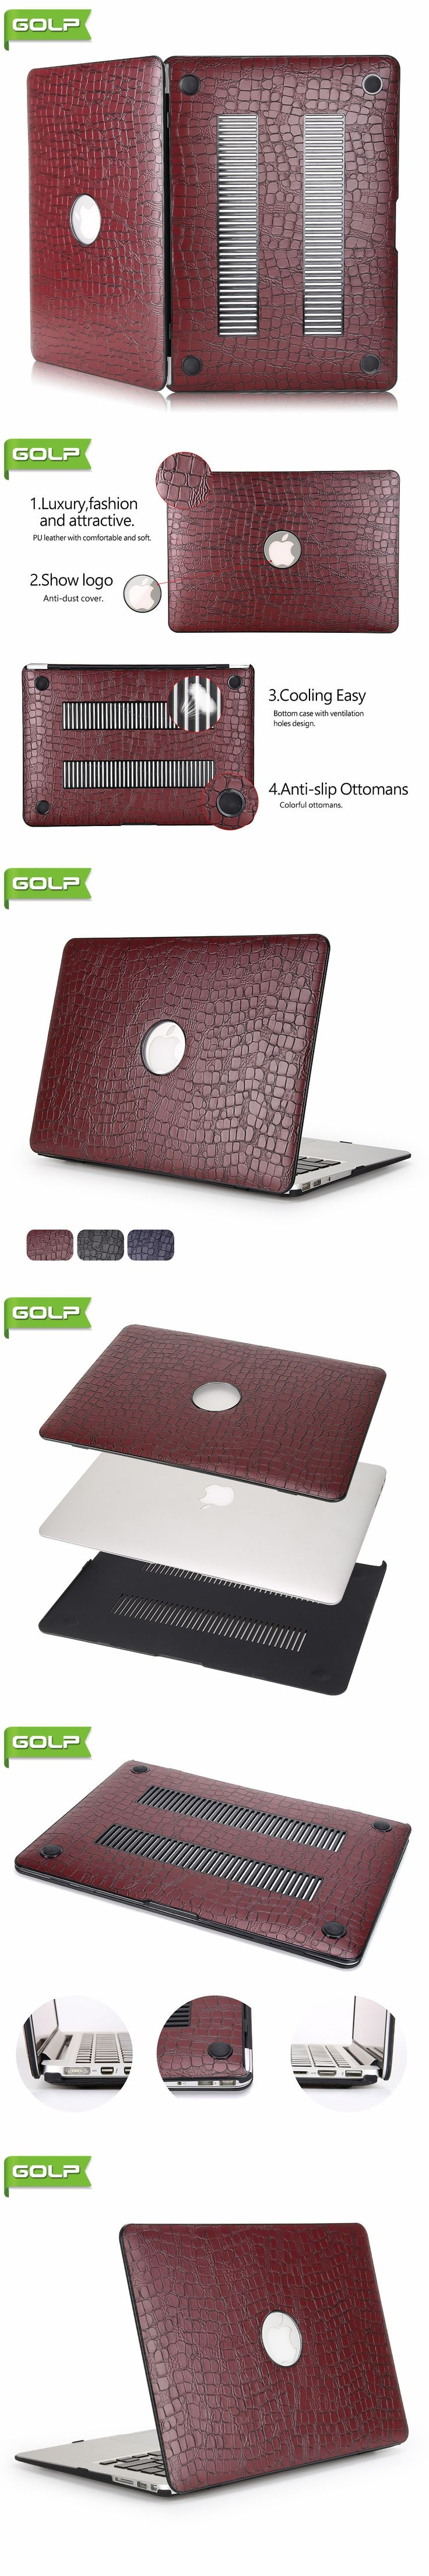 """Cover & Case for MacBook Air 11.6"""", GOLP Crocodile Grain PU Leather Cover cooling free PC laptop Case for MacBook Air 11.6"""""""